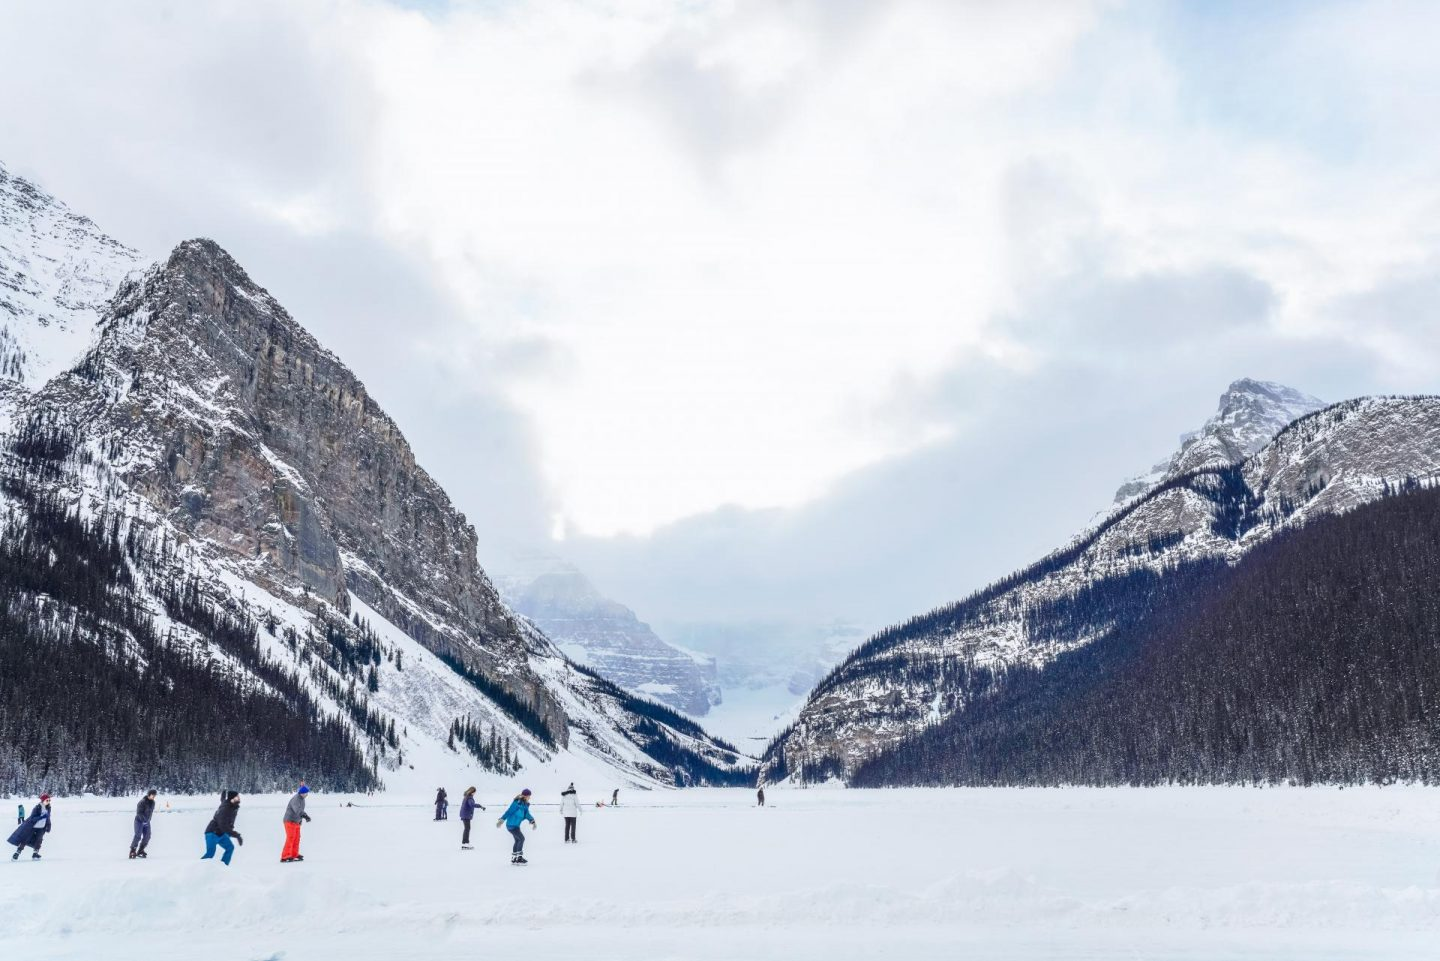 Ice skating at Lake Louise.